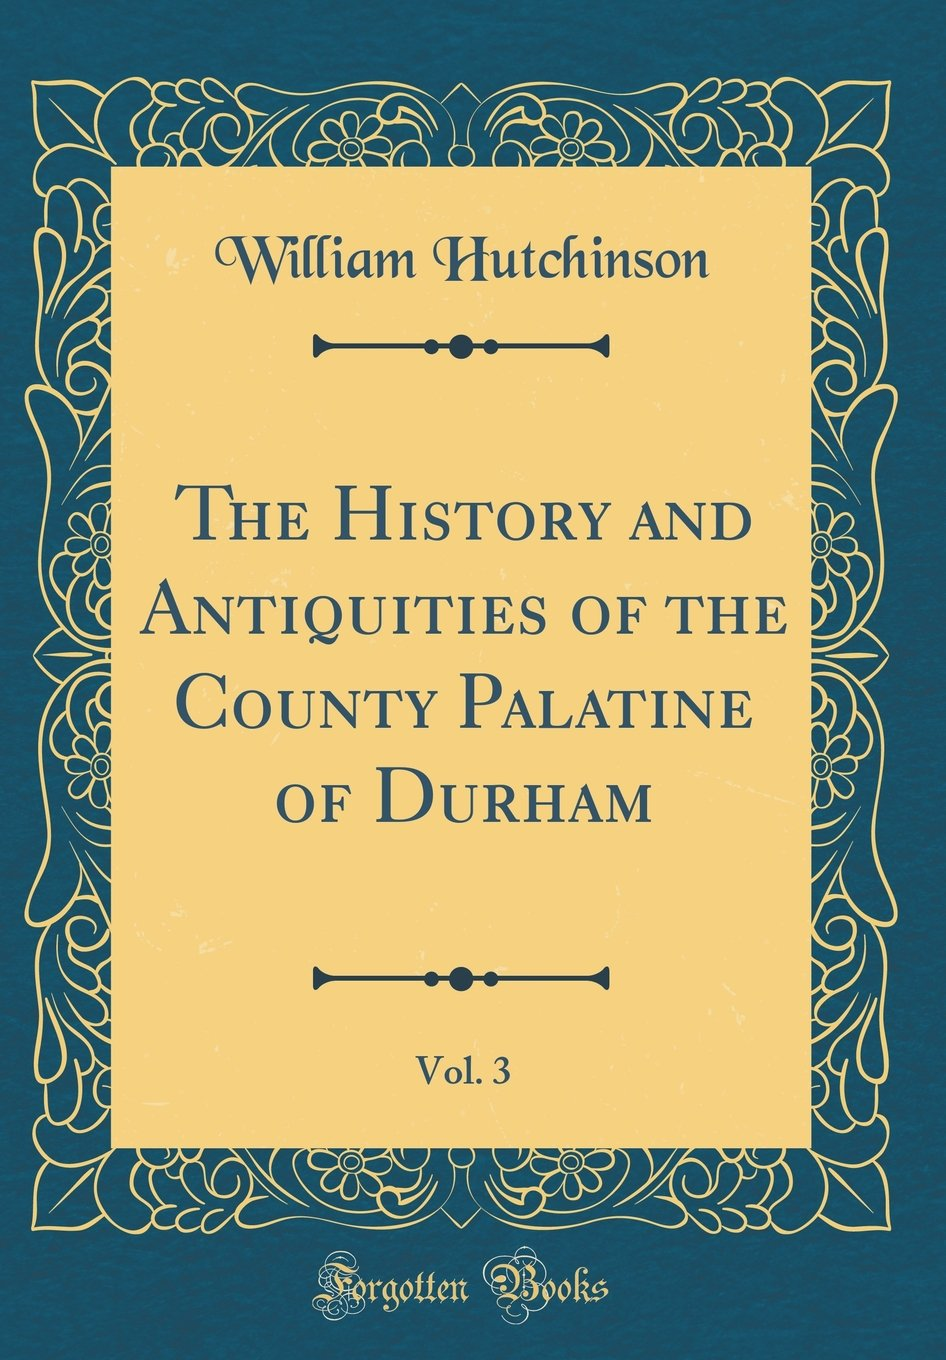 Download The History and Antiquities of the County Palatine of Durham, Vol. 3 (Classic Reprint) ebook